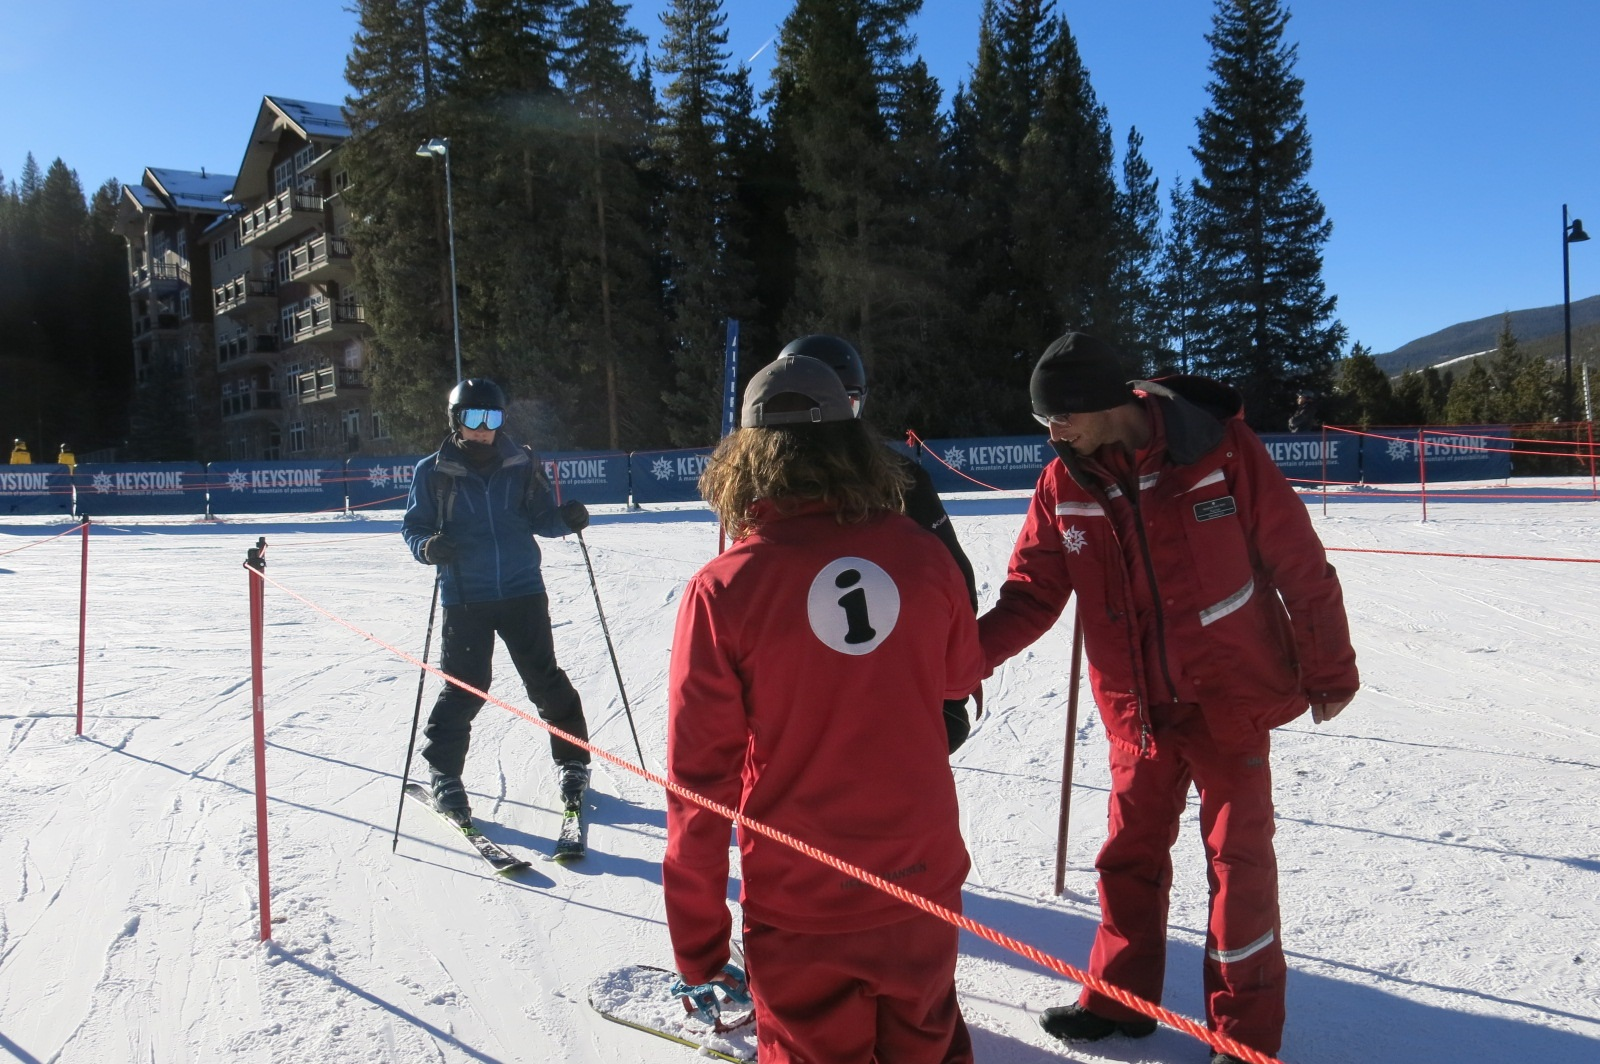 A skier lines up to have his pass scanned at Keystone, part of Vail Resorts. Last season, the multinational company reported spending $2.4 million on energy efficient equipment, including snow guns.